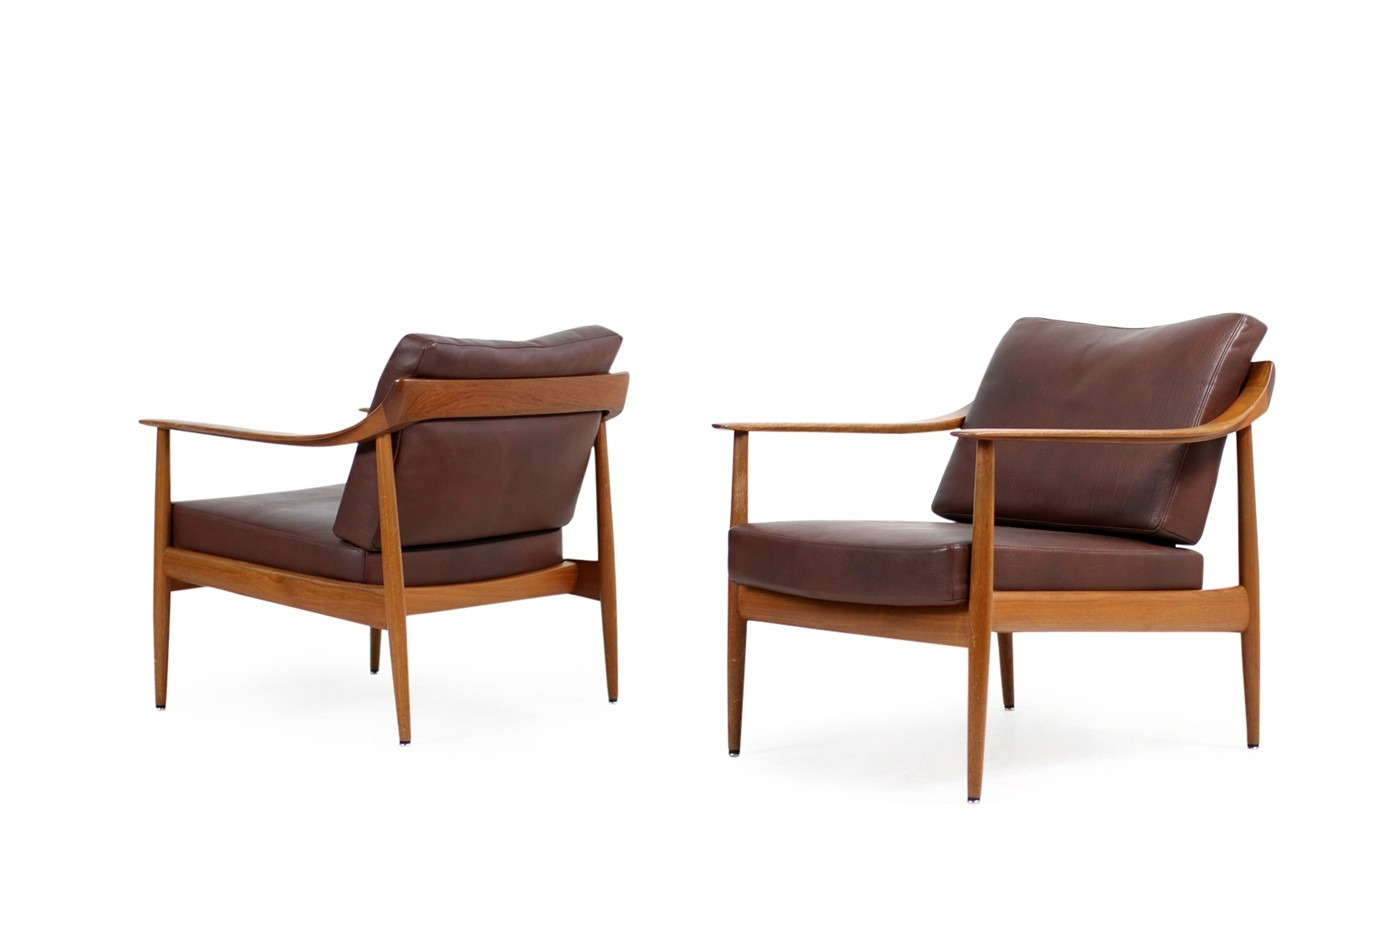 Knoll Sessel Gebraucht Pair Of 1960s Teak Leather Easy Chairs Knoll Antimott Mid Century